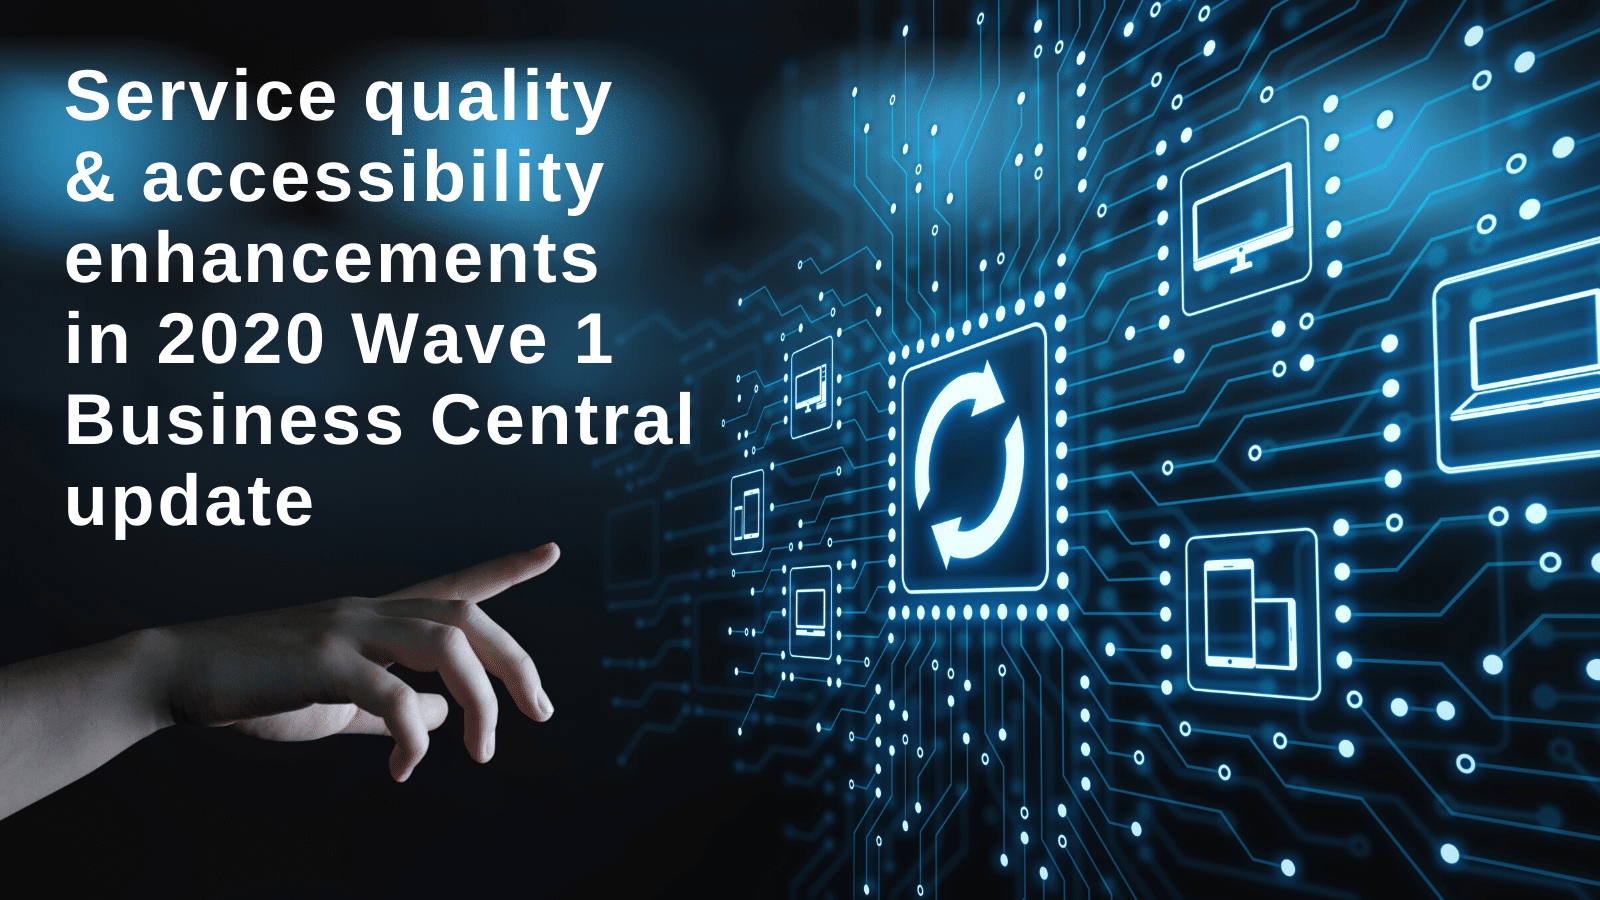 Service quality and accessibility enhancements in 2020 Wave 1 Business Central update